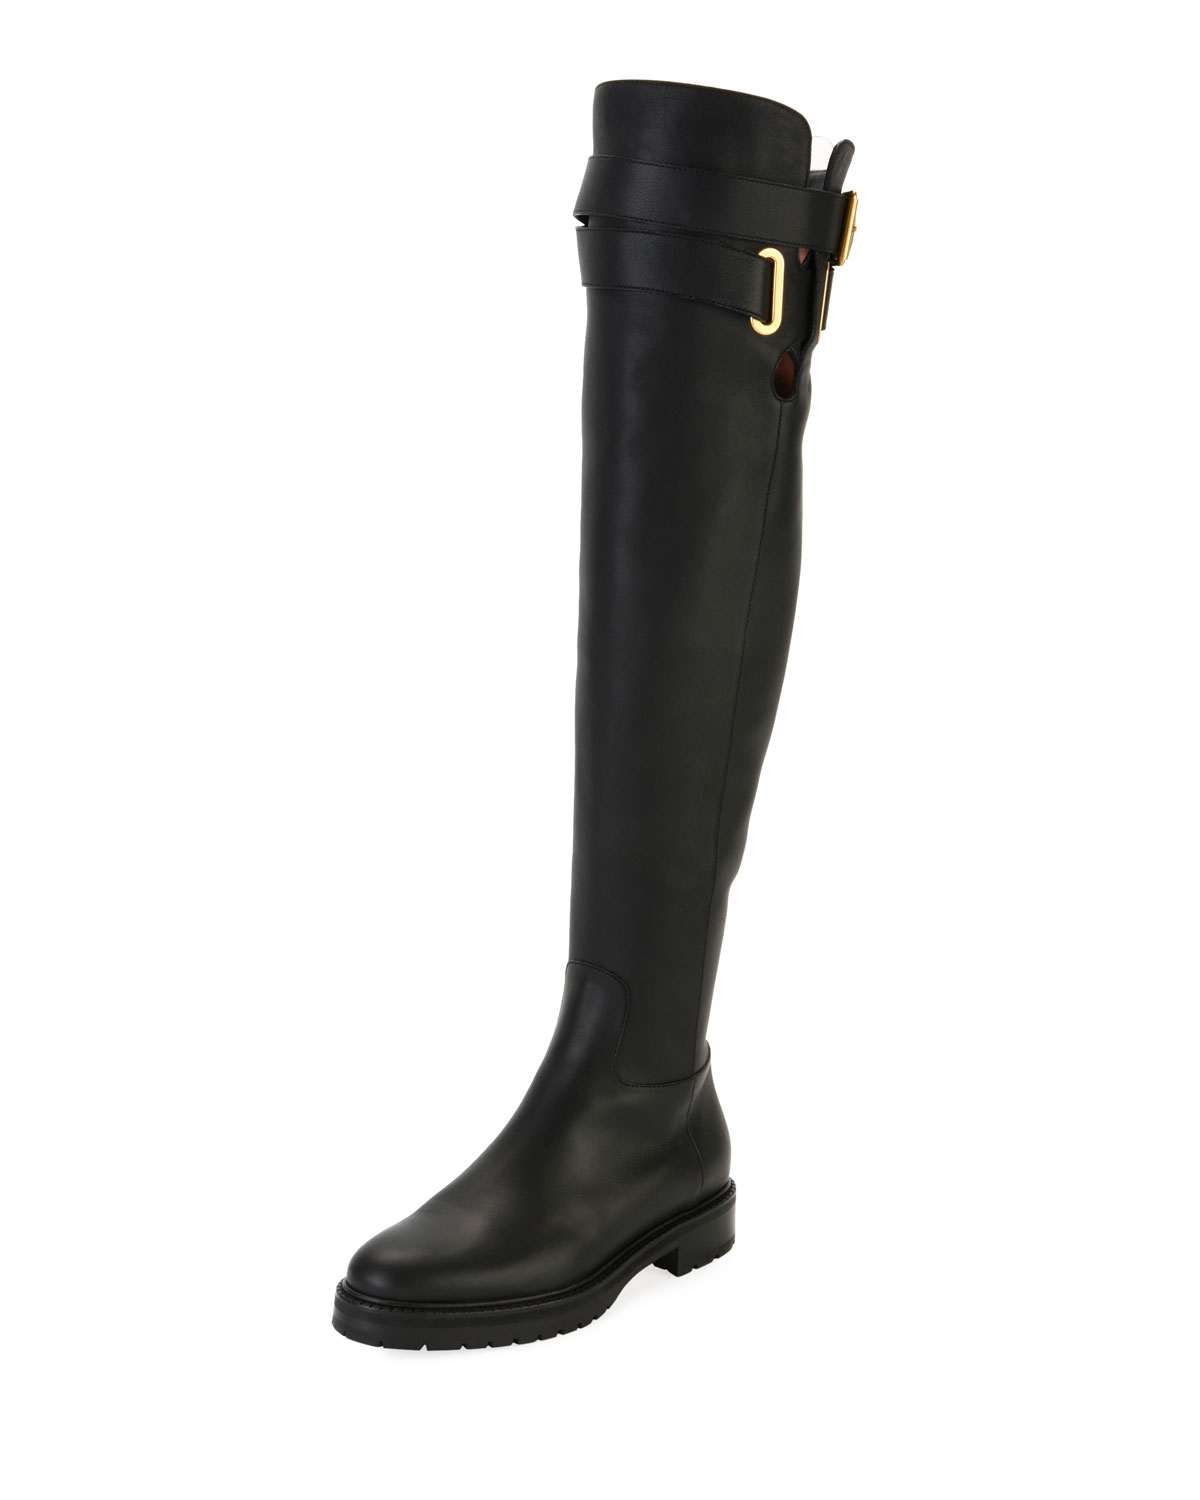 71c8026f75d Valentino Garavani Over-the-Knee Leather Boot